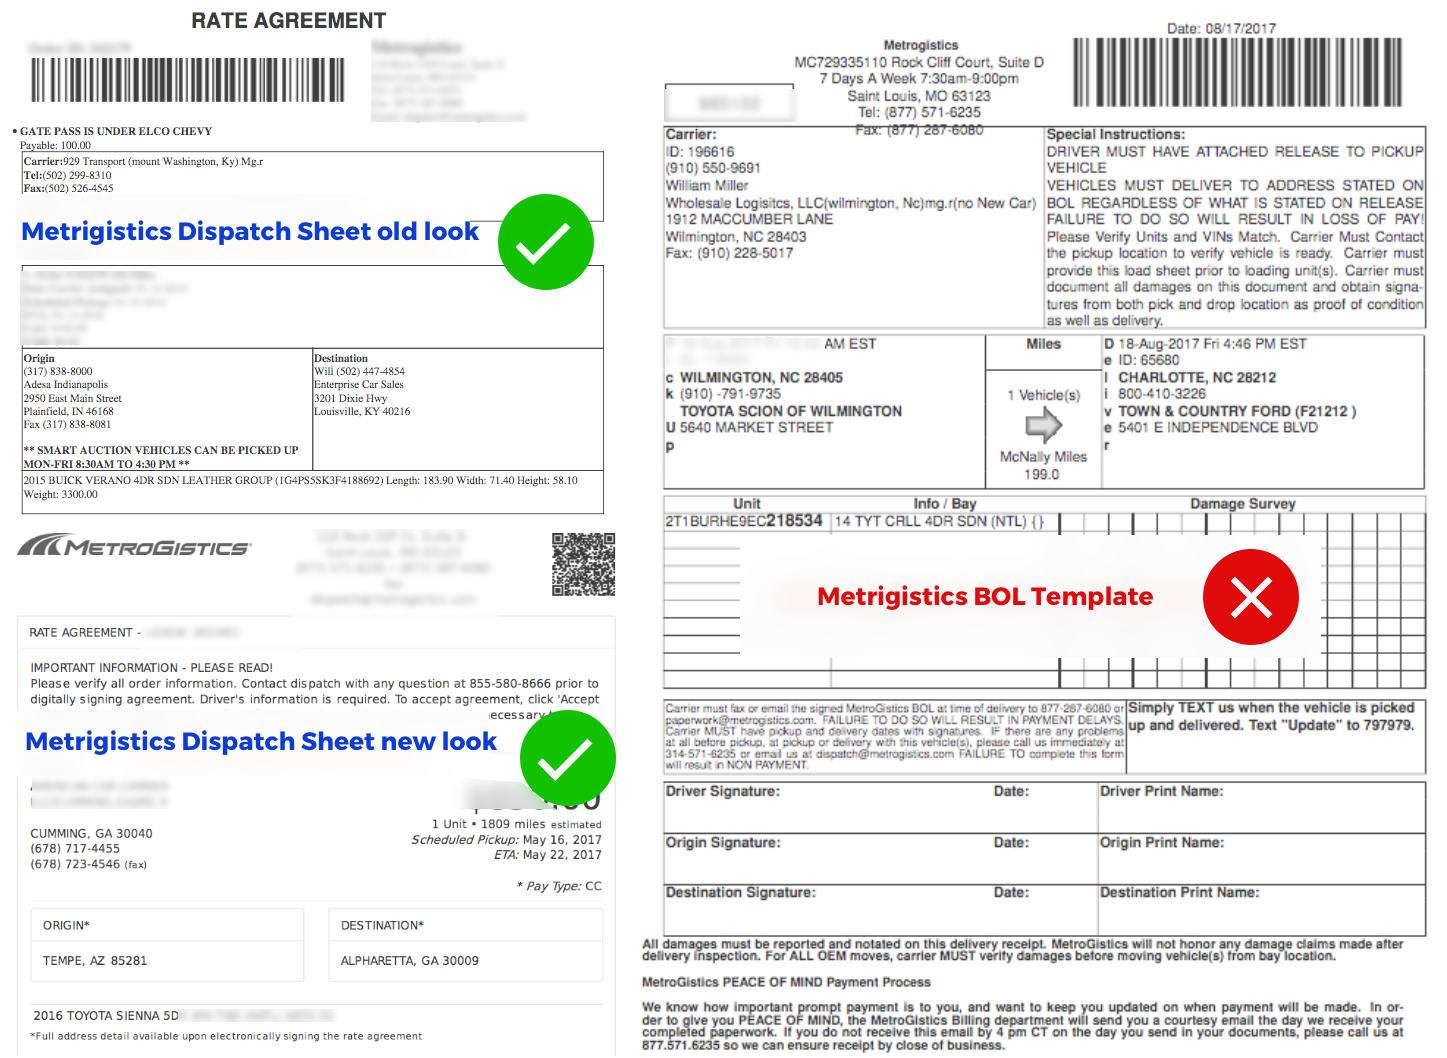 How to Import a Metrogistics dispatch order into Super Dispatch – Bol Template